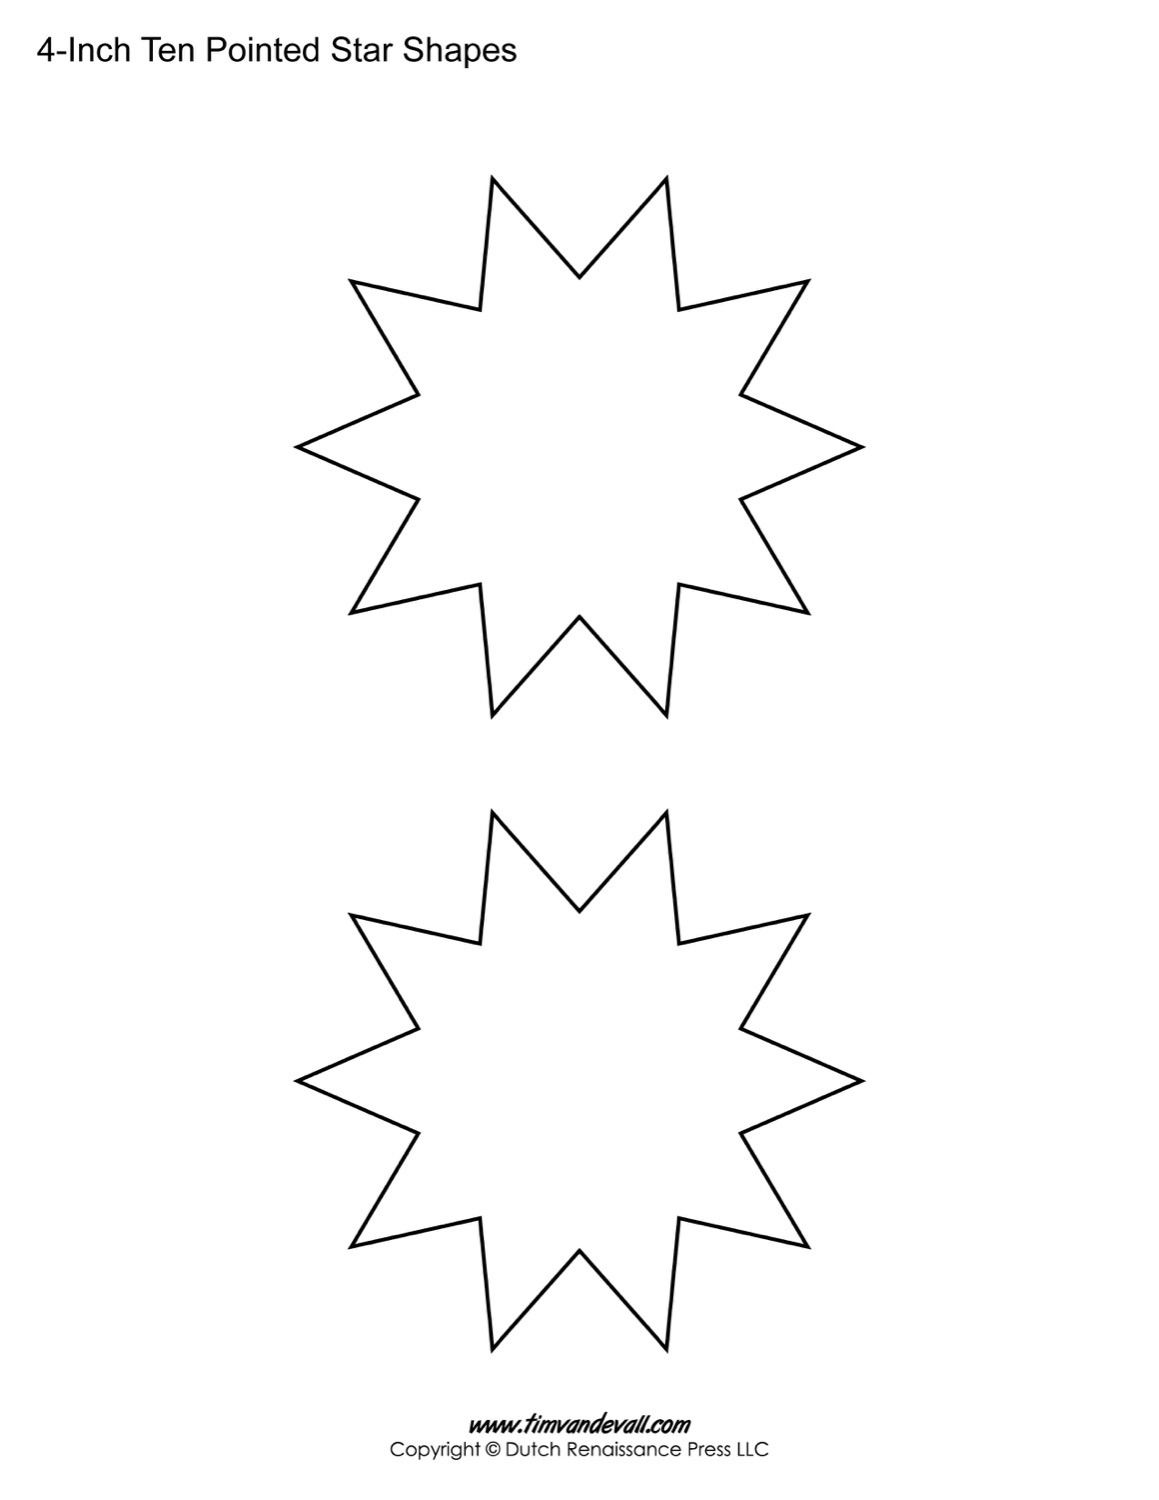 Star shape template images template design ideas for Avery template 5247